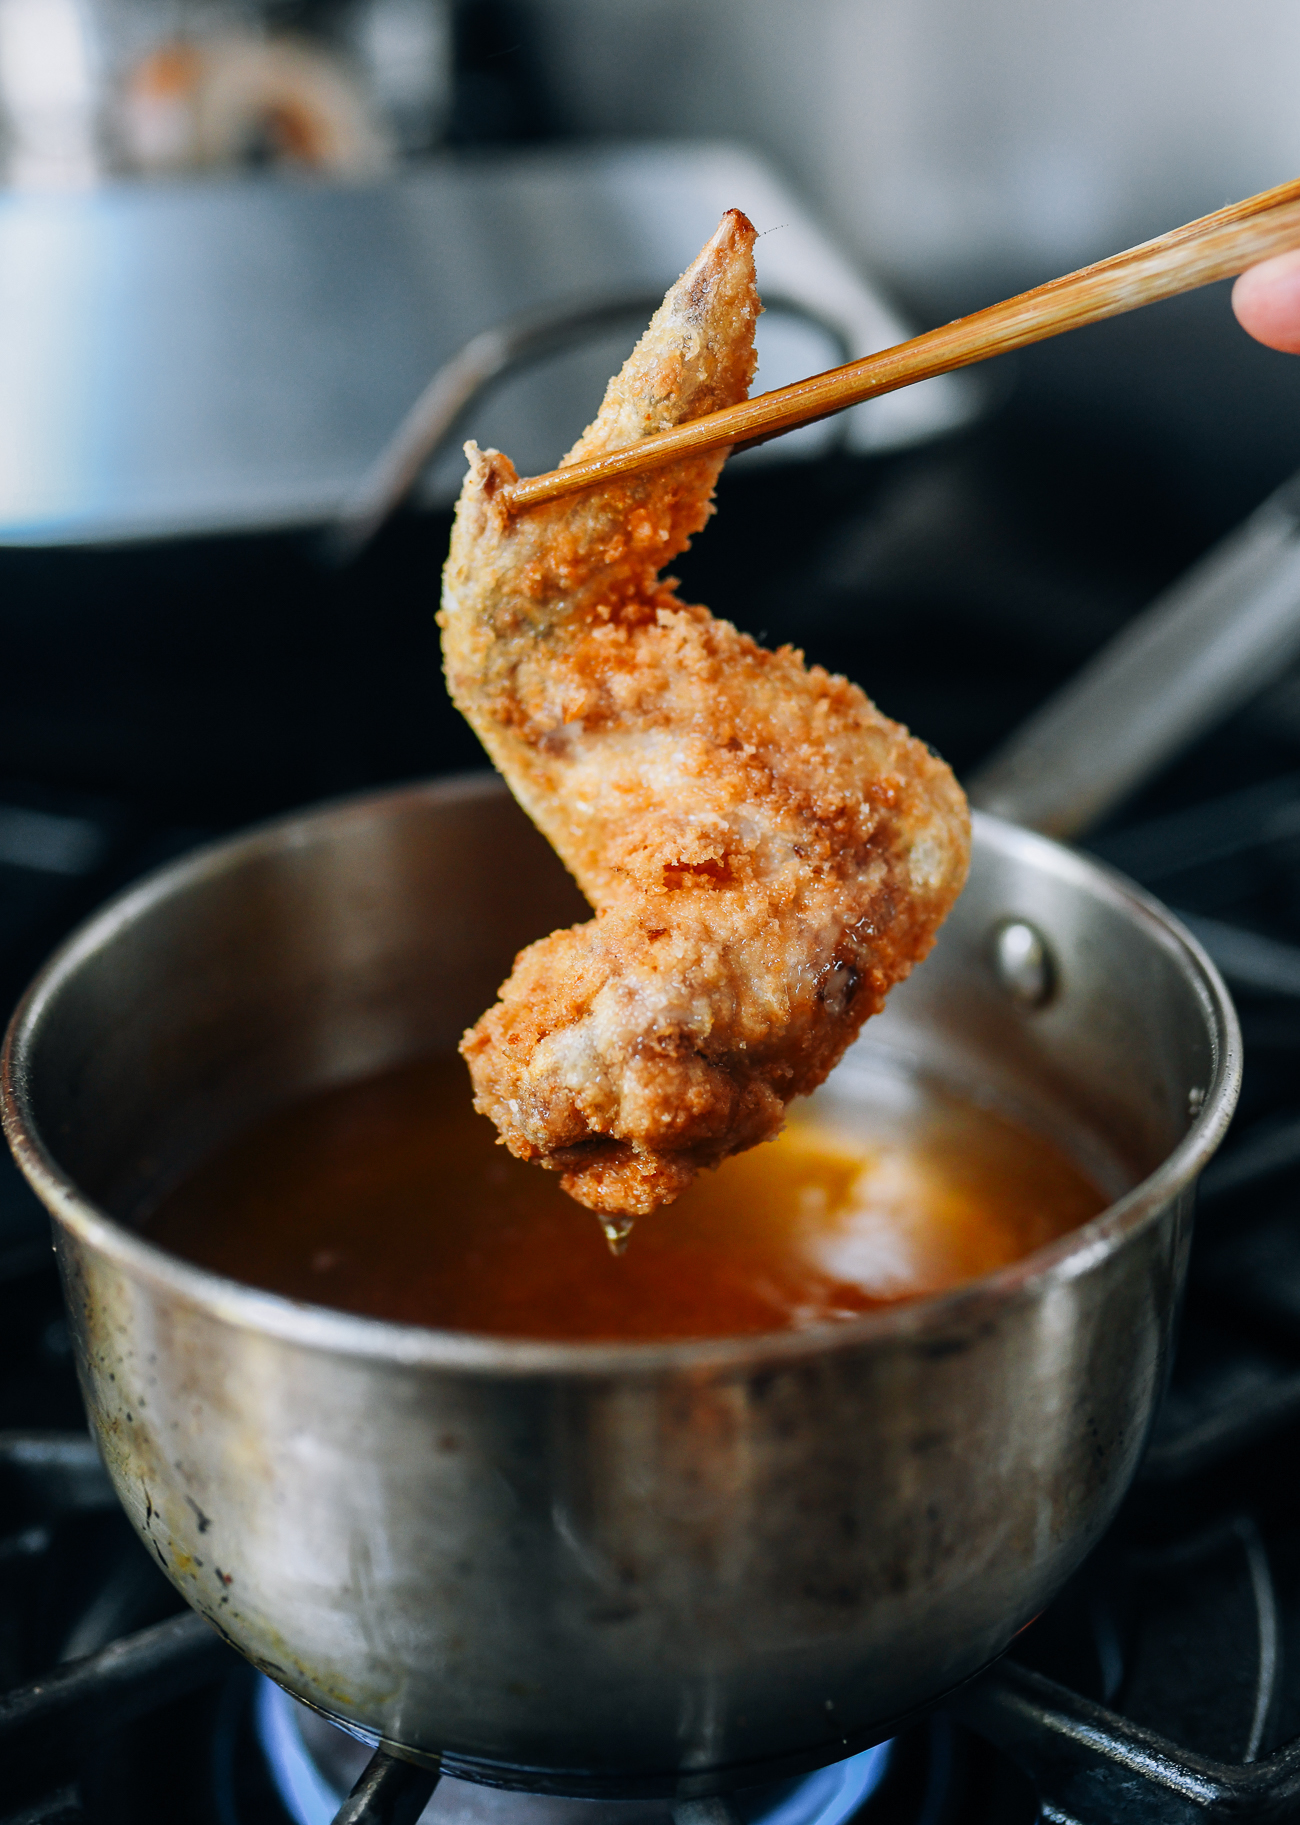 Chicken wing after first fry